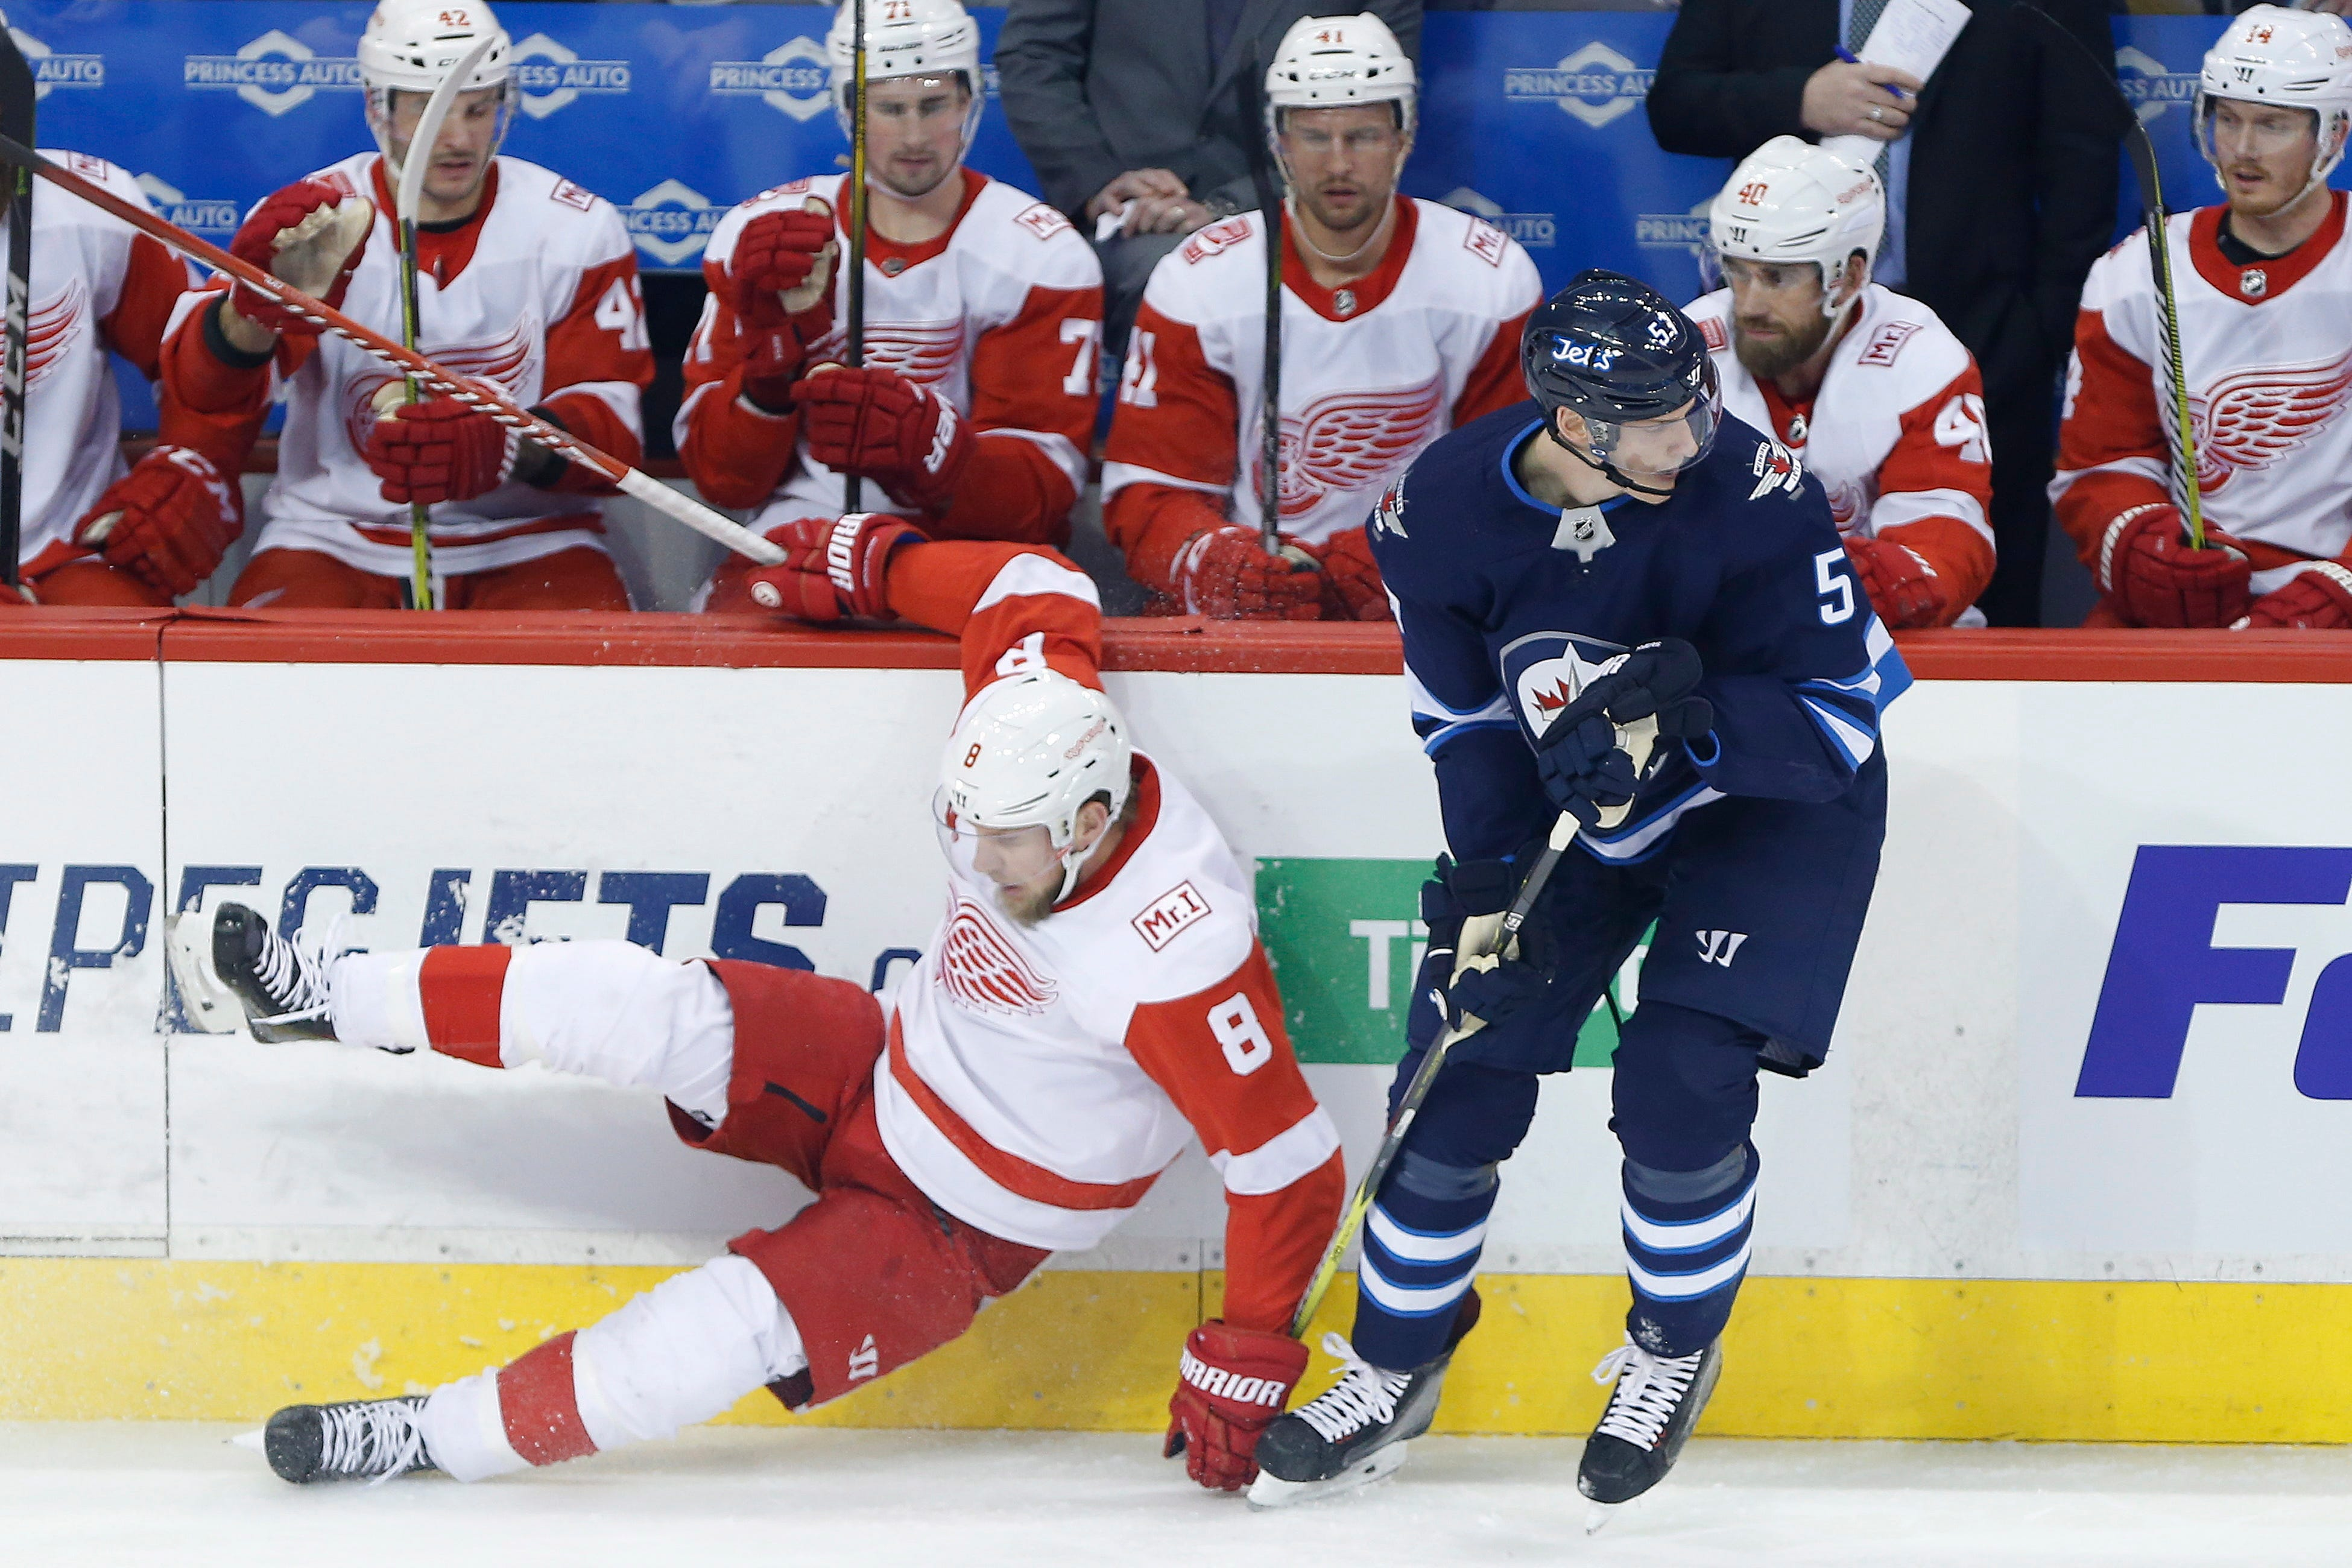 Patrik Laine scores twice, Jets past Red Wings 4-3